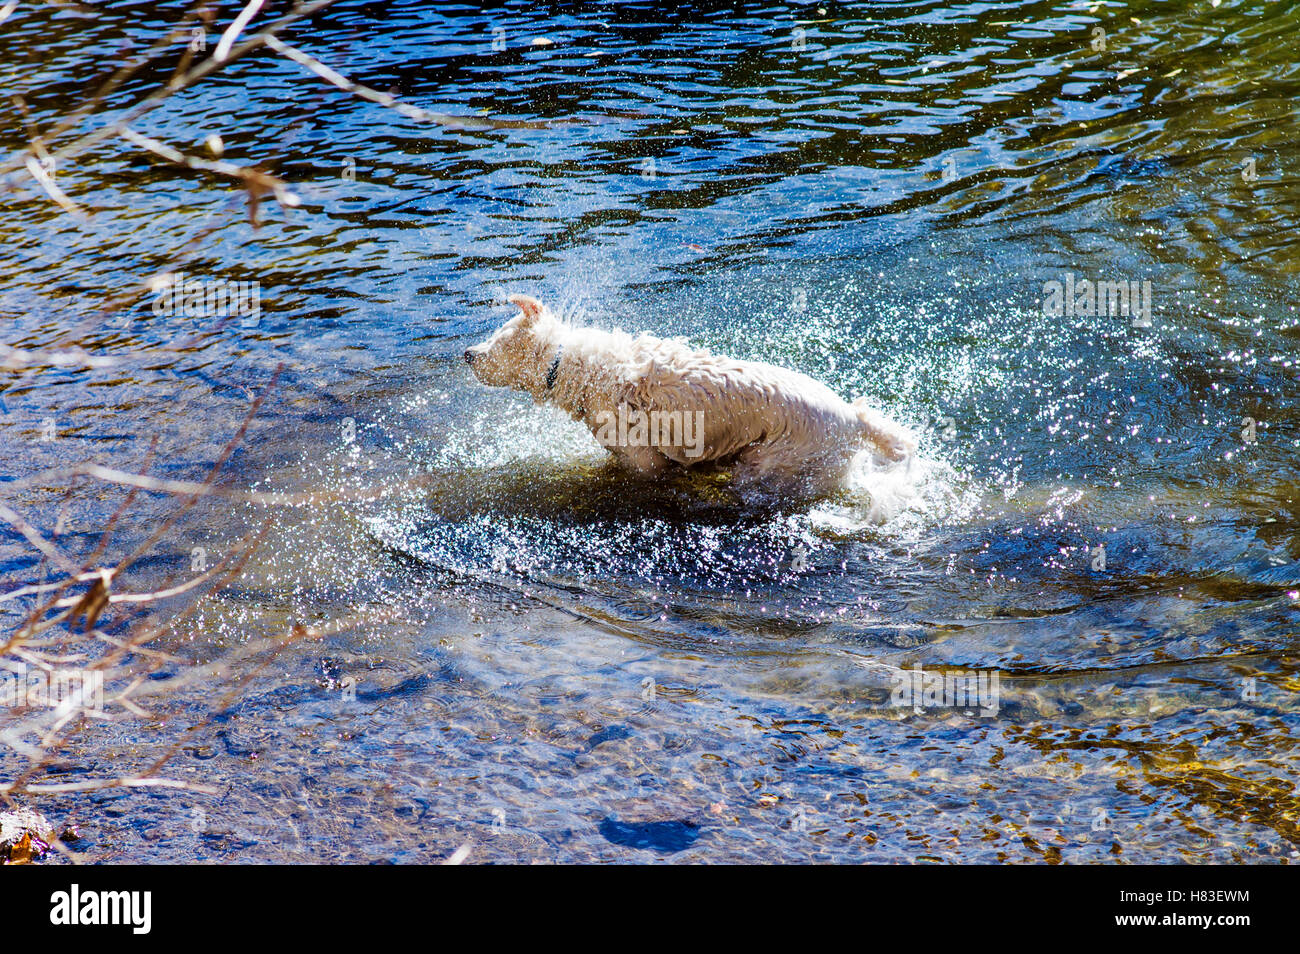 Platinum colored Golden Retriever dog shaking off in the Arkansas River, Salida, Colorado, USA - Stock Image